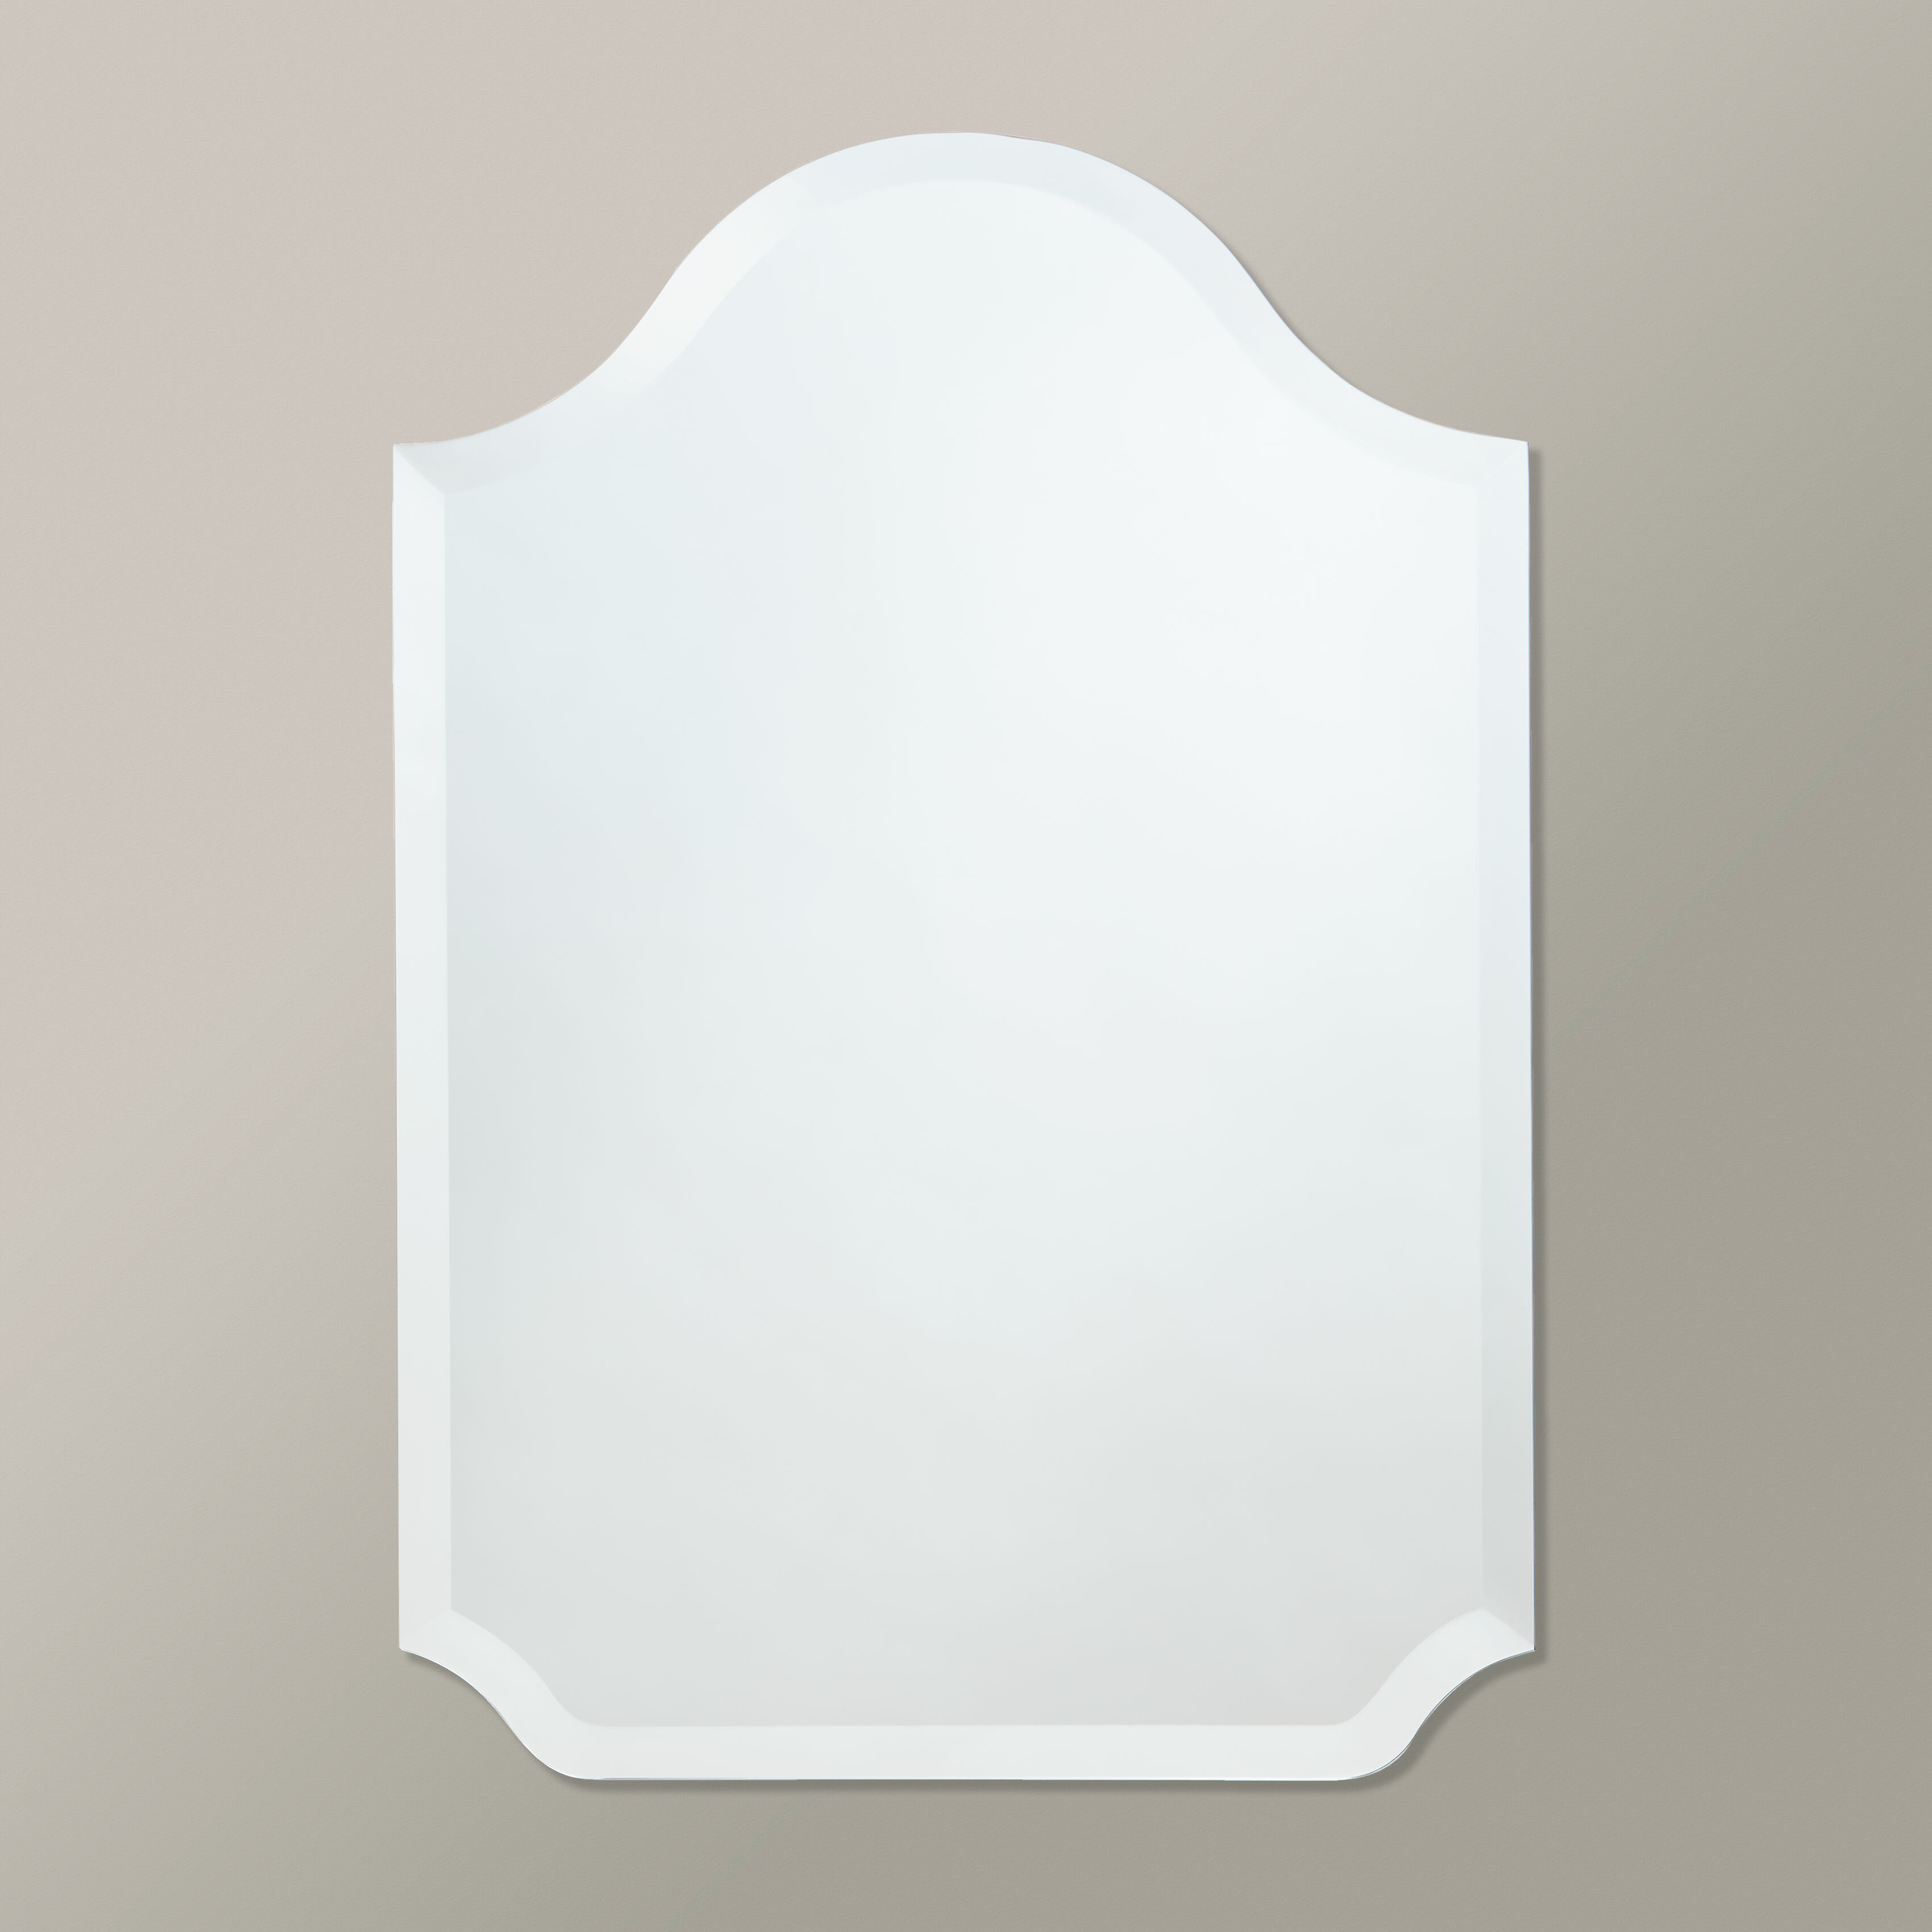 Scalloped Glass Mirror | Wayfair Intended For Dariel Tall Arched Scalloped Wall Mirrors (View 10 of 20)